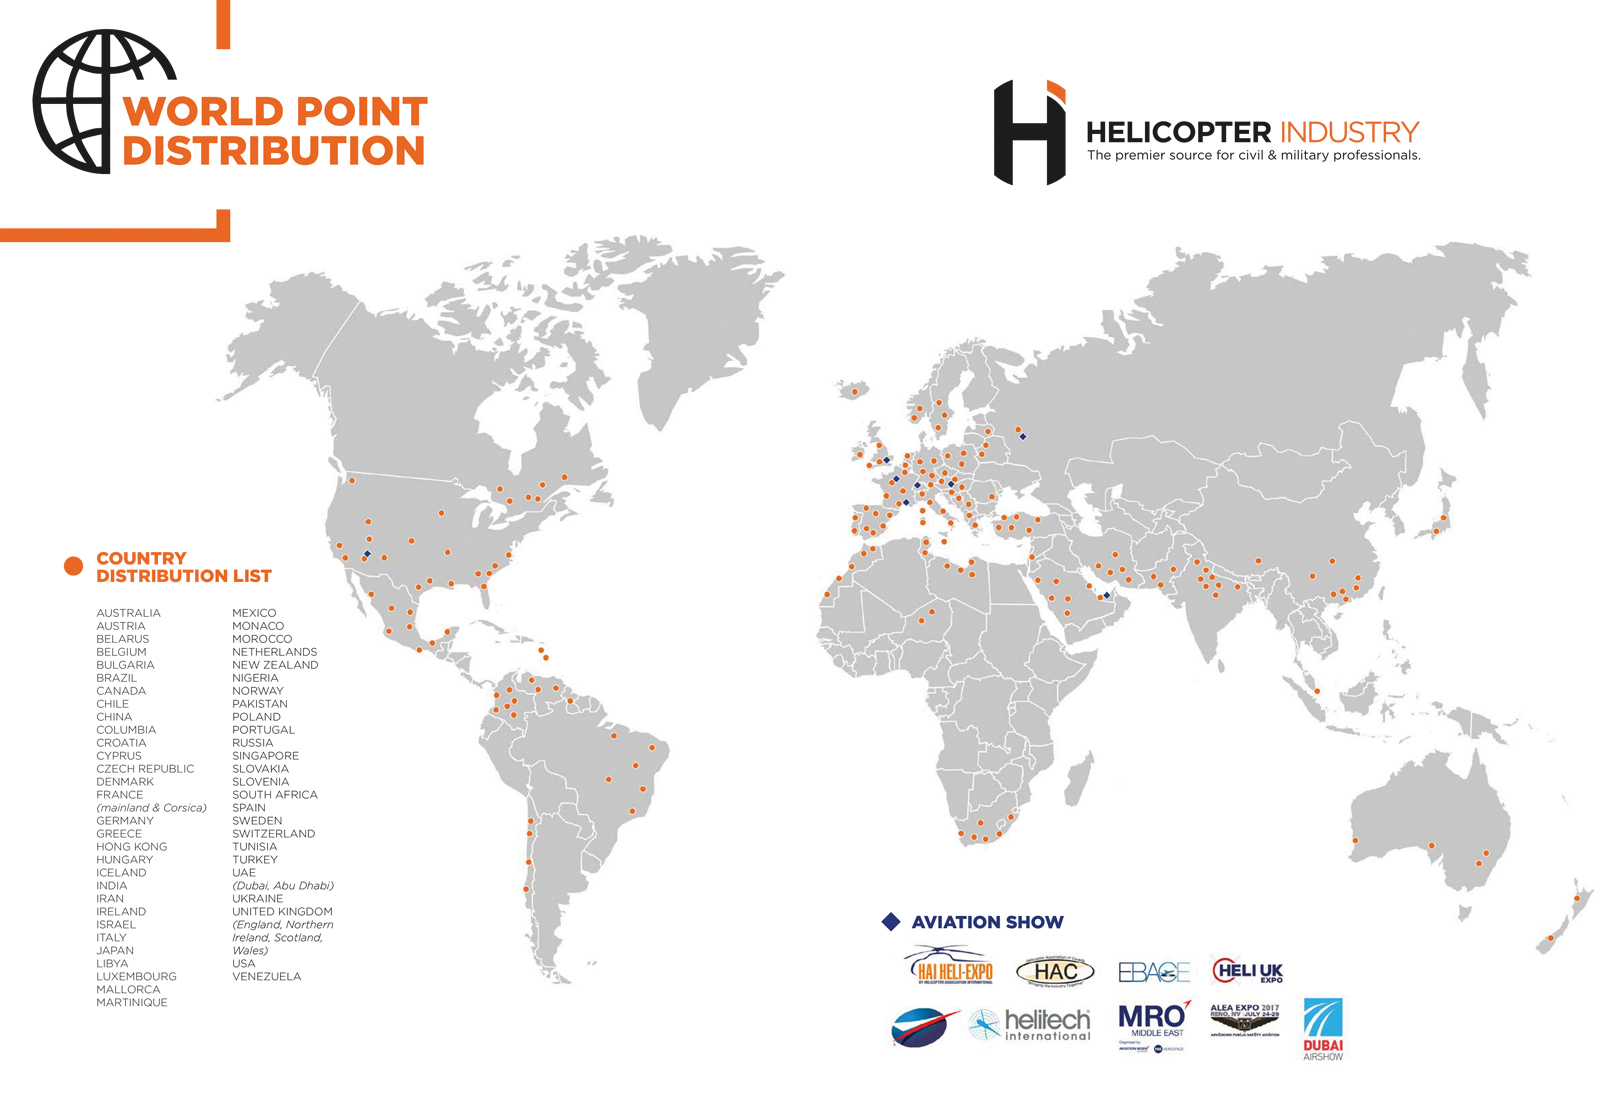 Map Of South Ireland New Zealand.Magazine Distribution Map 2019 Helicopter Industry